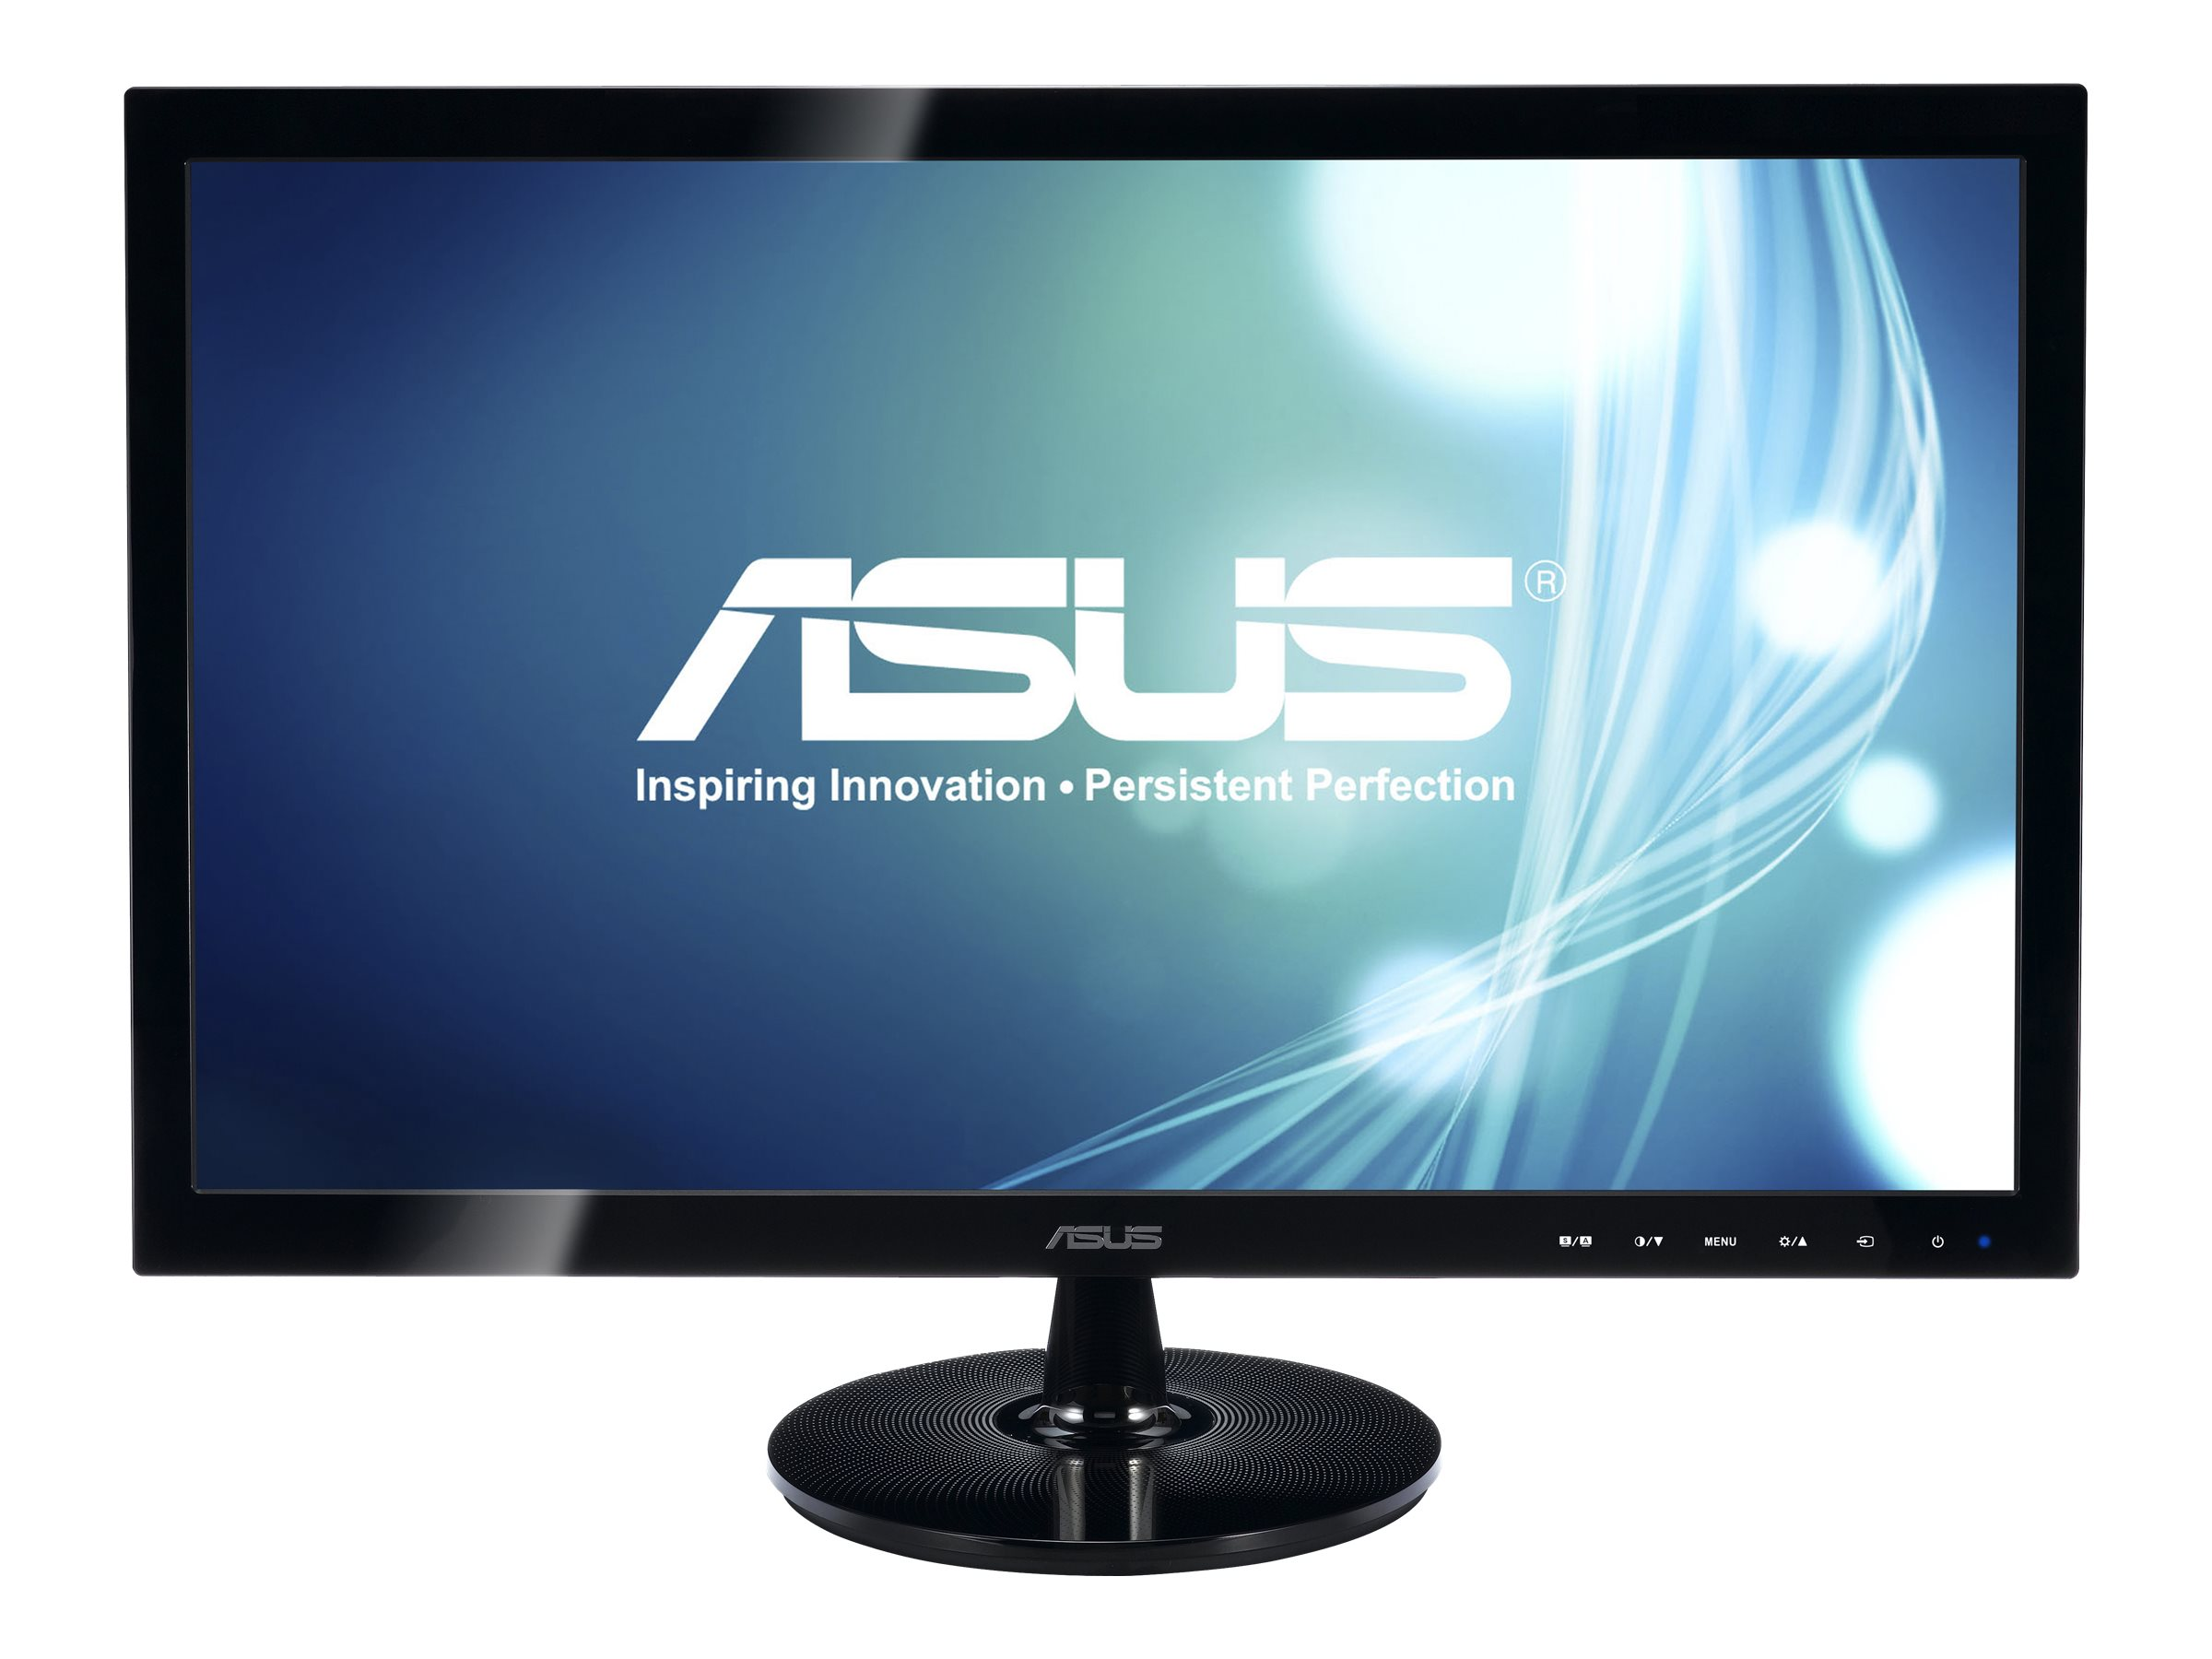 Asus 23 VS238H-P Full HD LED Monitor, Black, VS238H-P, 13030874, Monitors